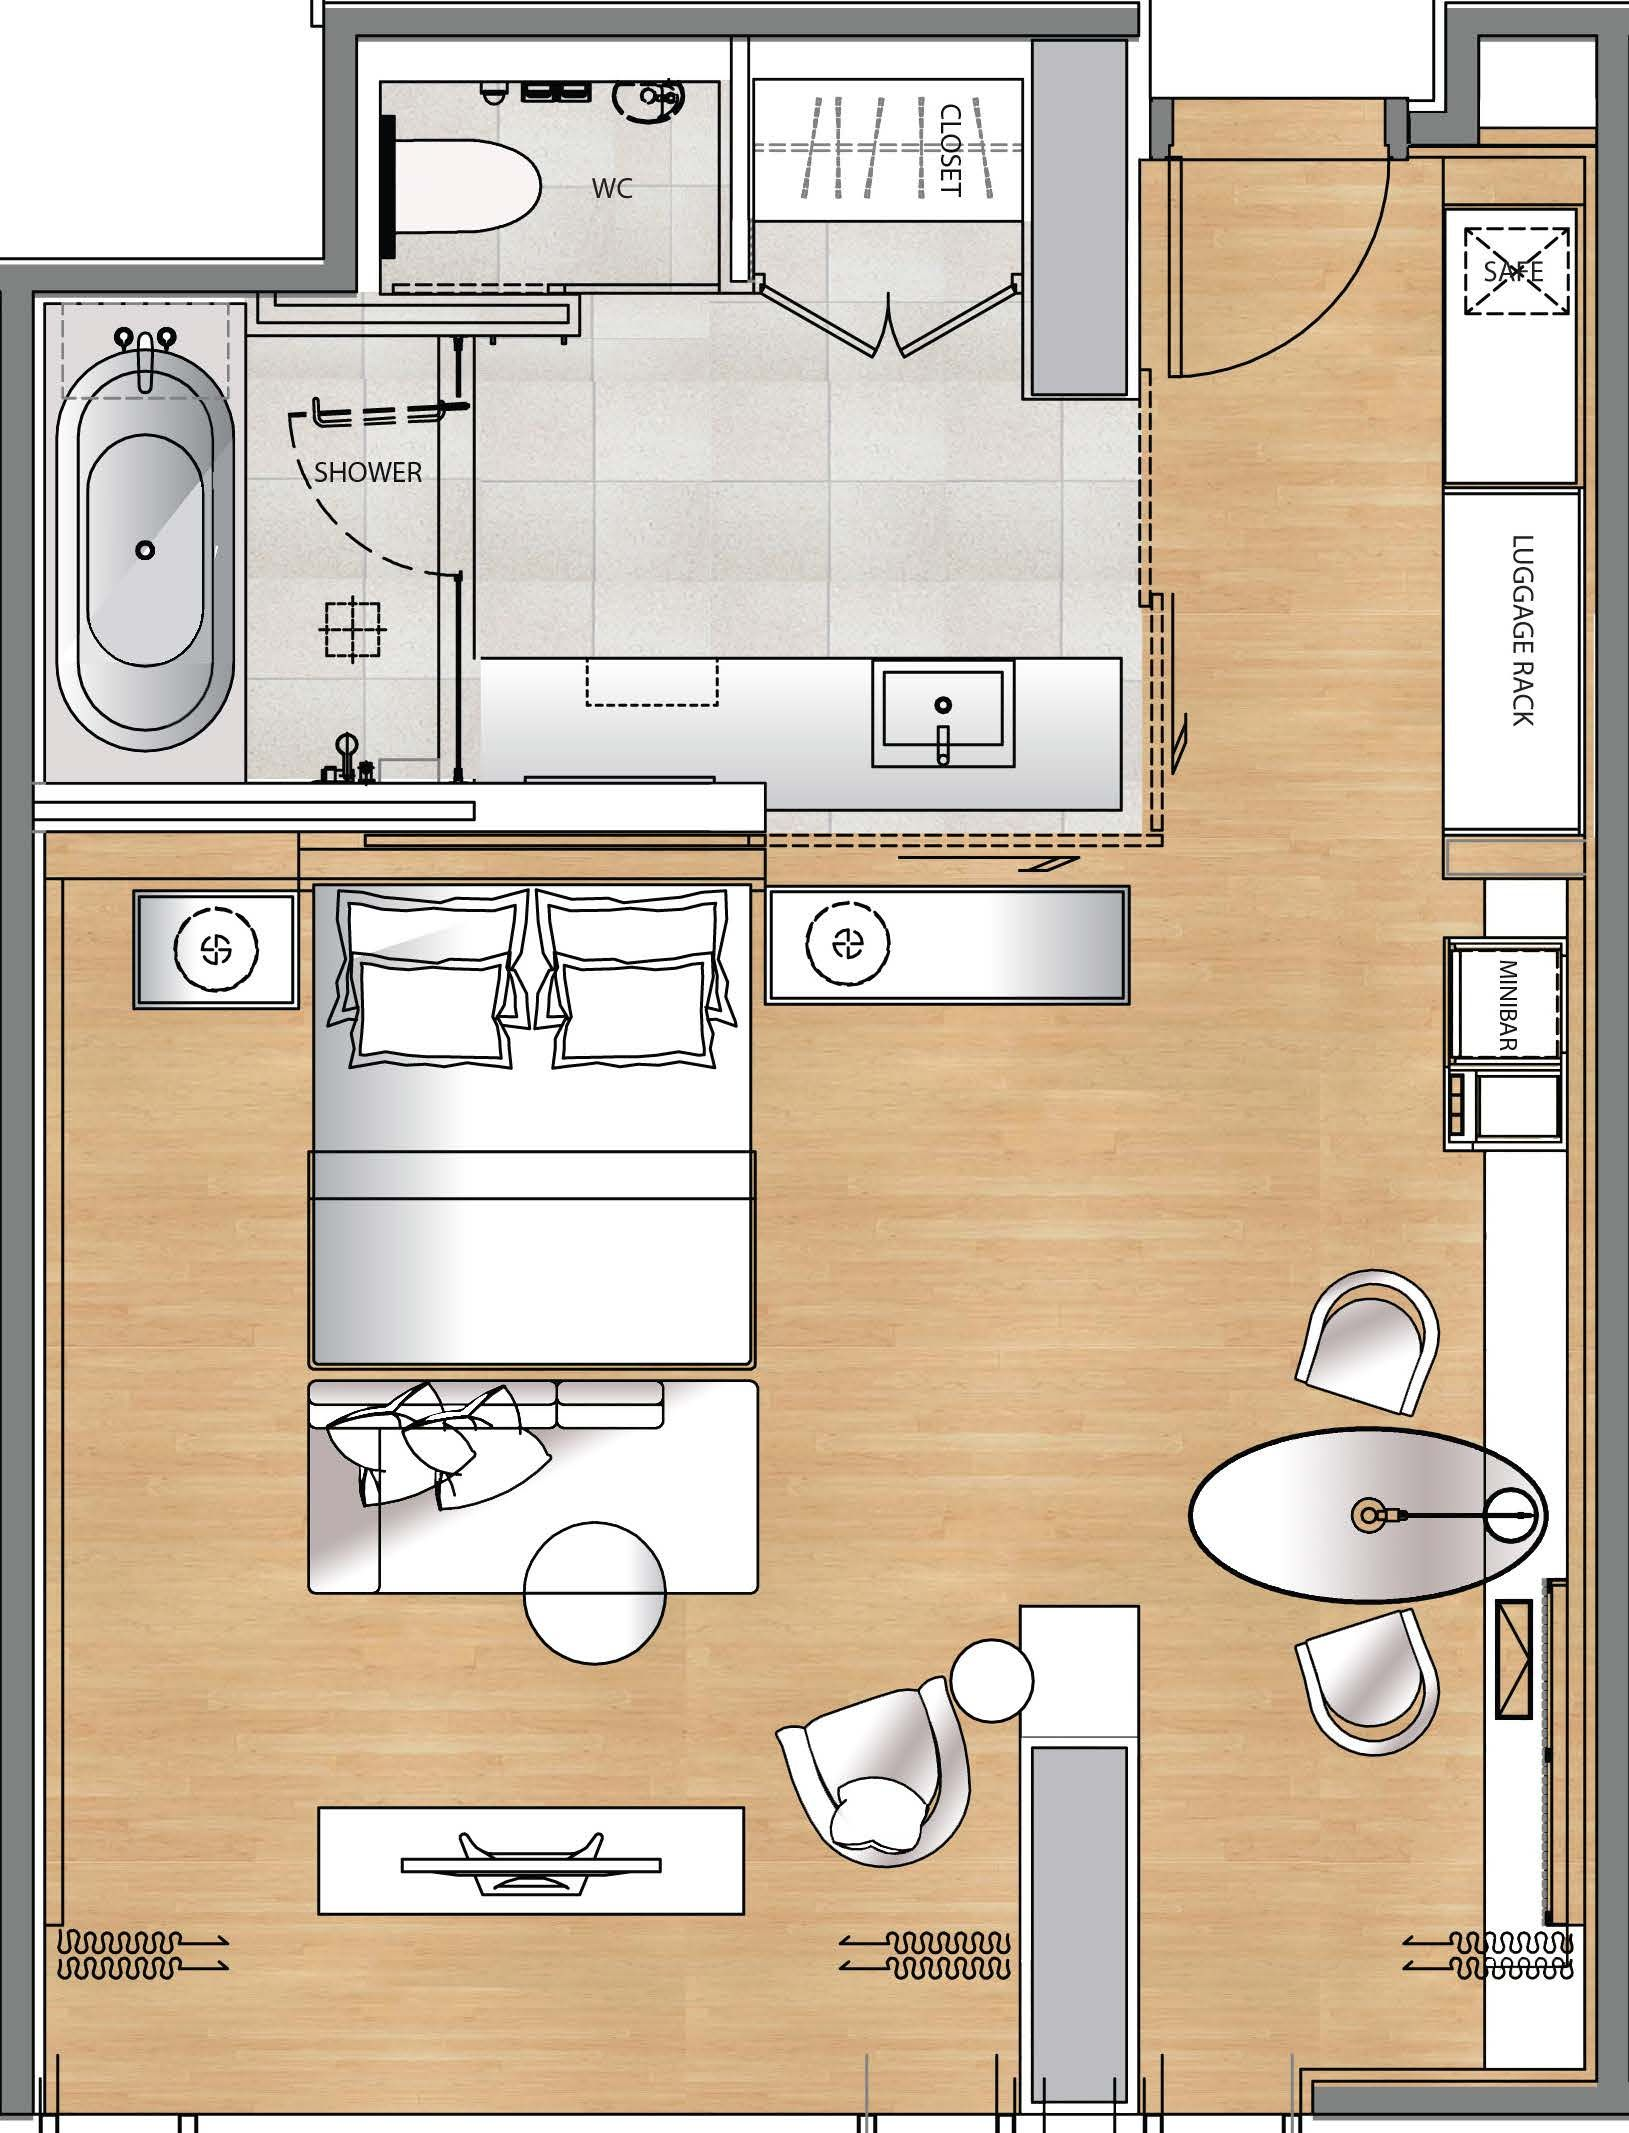 Hotel gym floor plan google search hotel rooms for House plans with suites